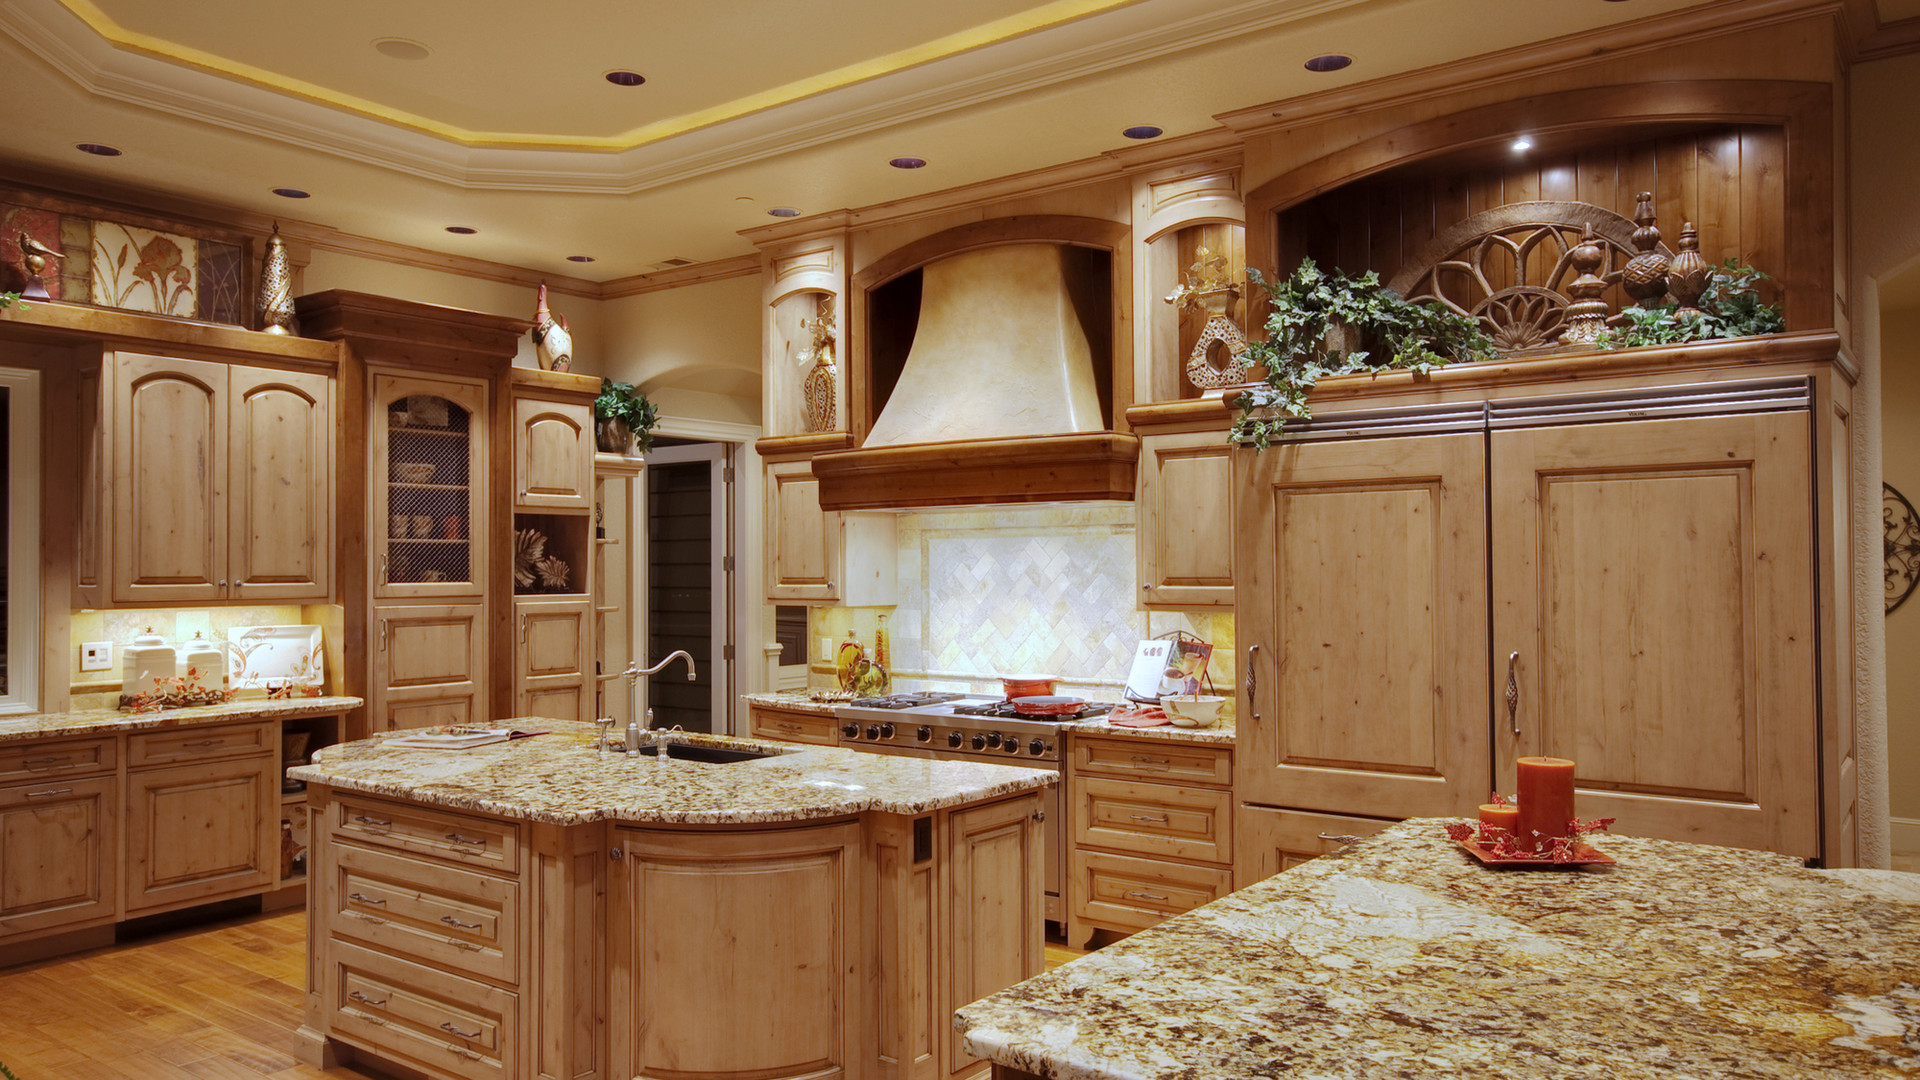 luxury-kitchen-19646925.jpg